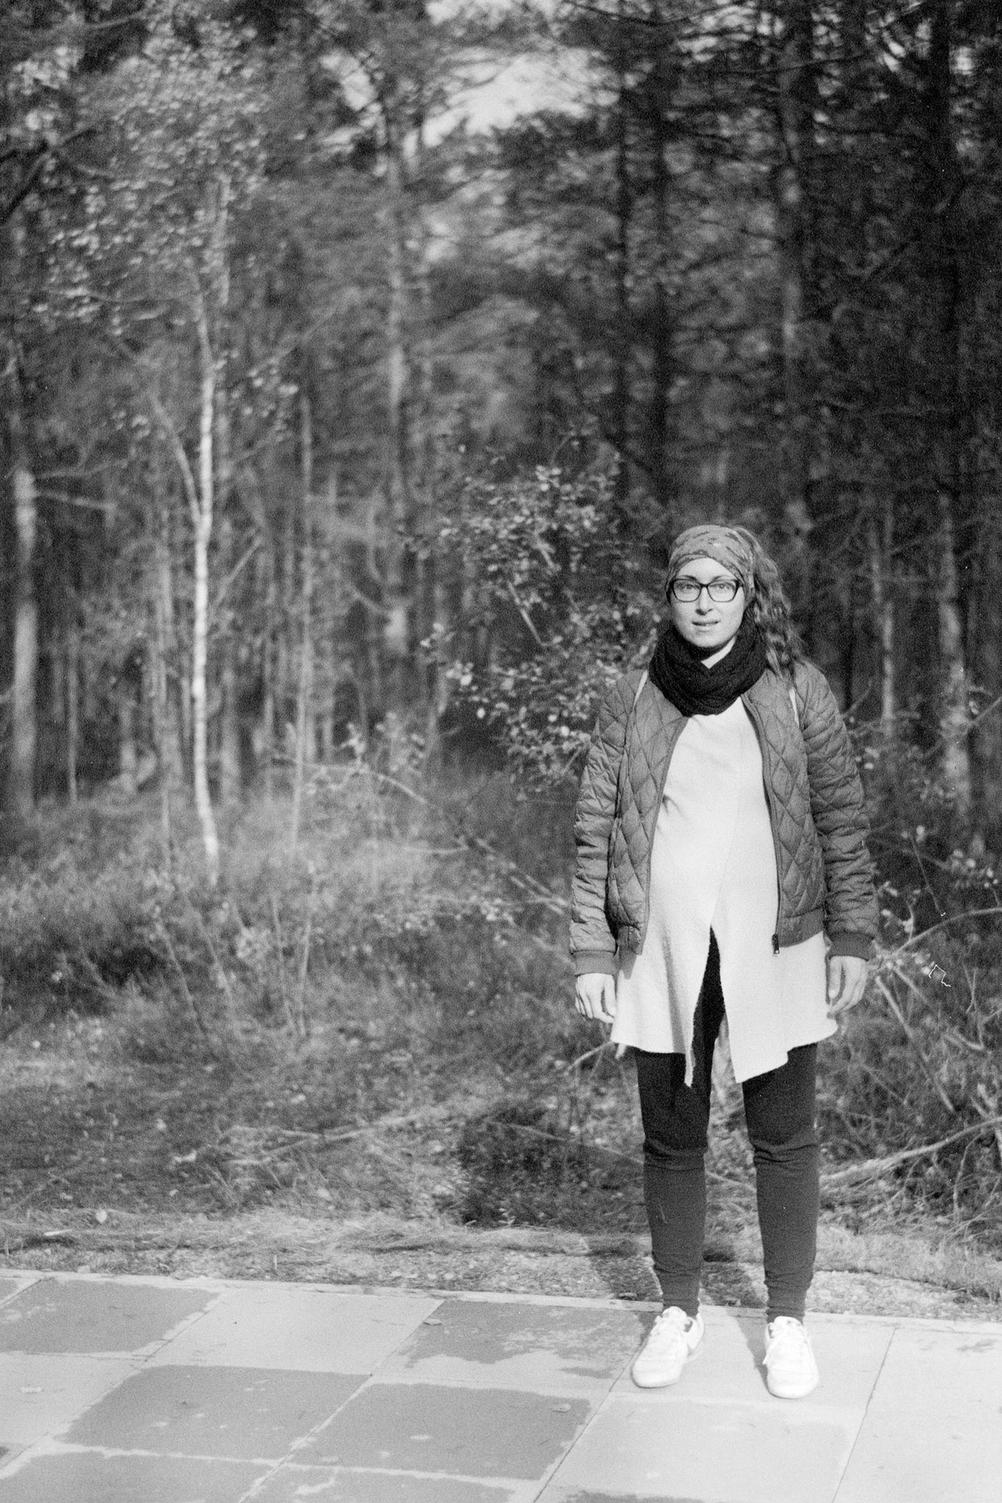 Photo of my wife standing in forest.